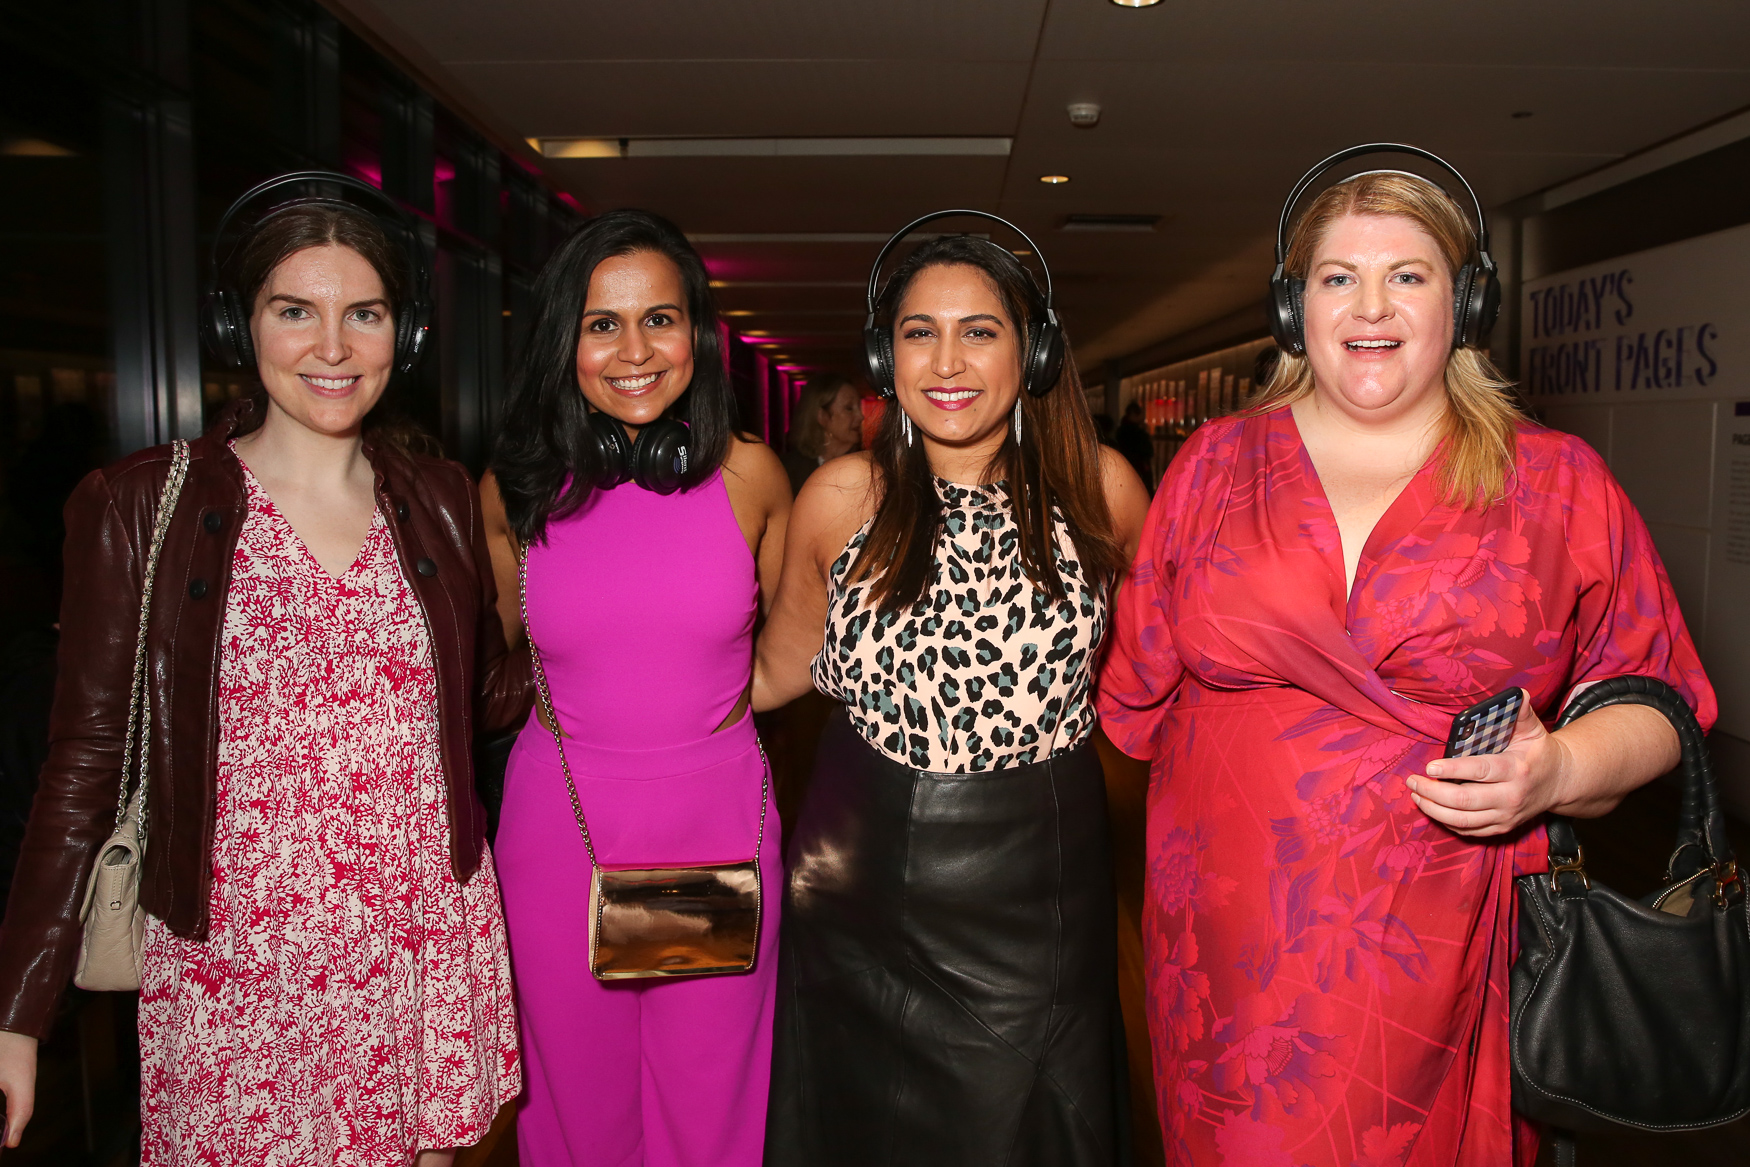 Newseum Nights 'In Bloom' have a pink dress code, but we love these fresh takes on it - especially that leather skirt!{&nbsp;}(Amanda Andrade-Rhoades/DC Refined)<p></p><p></p><p><br></p>